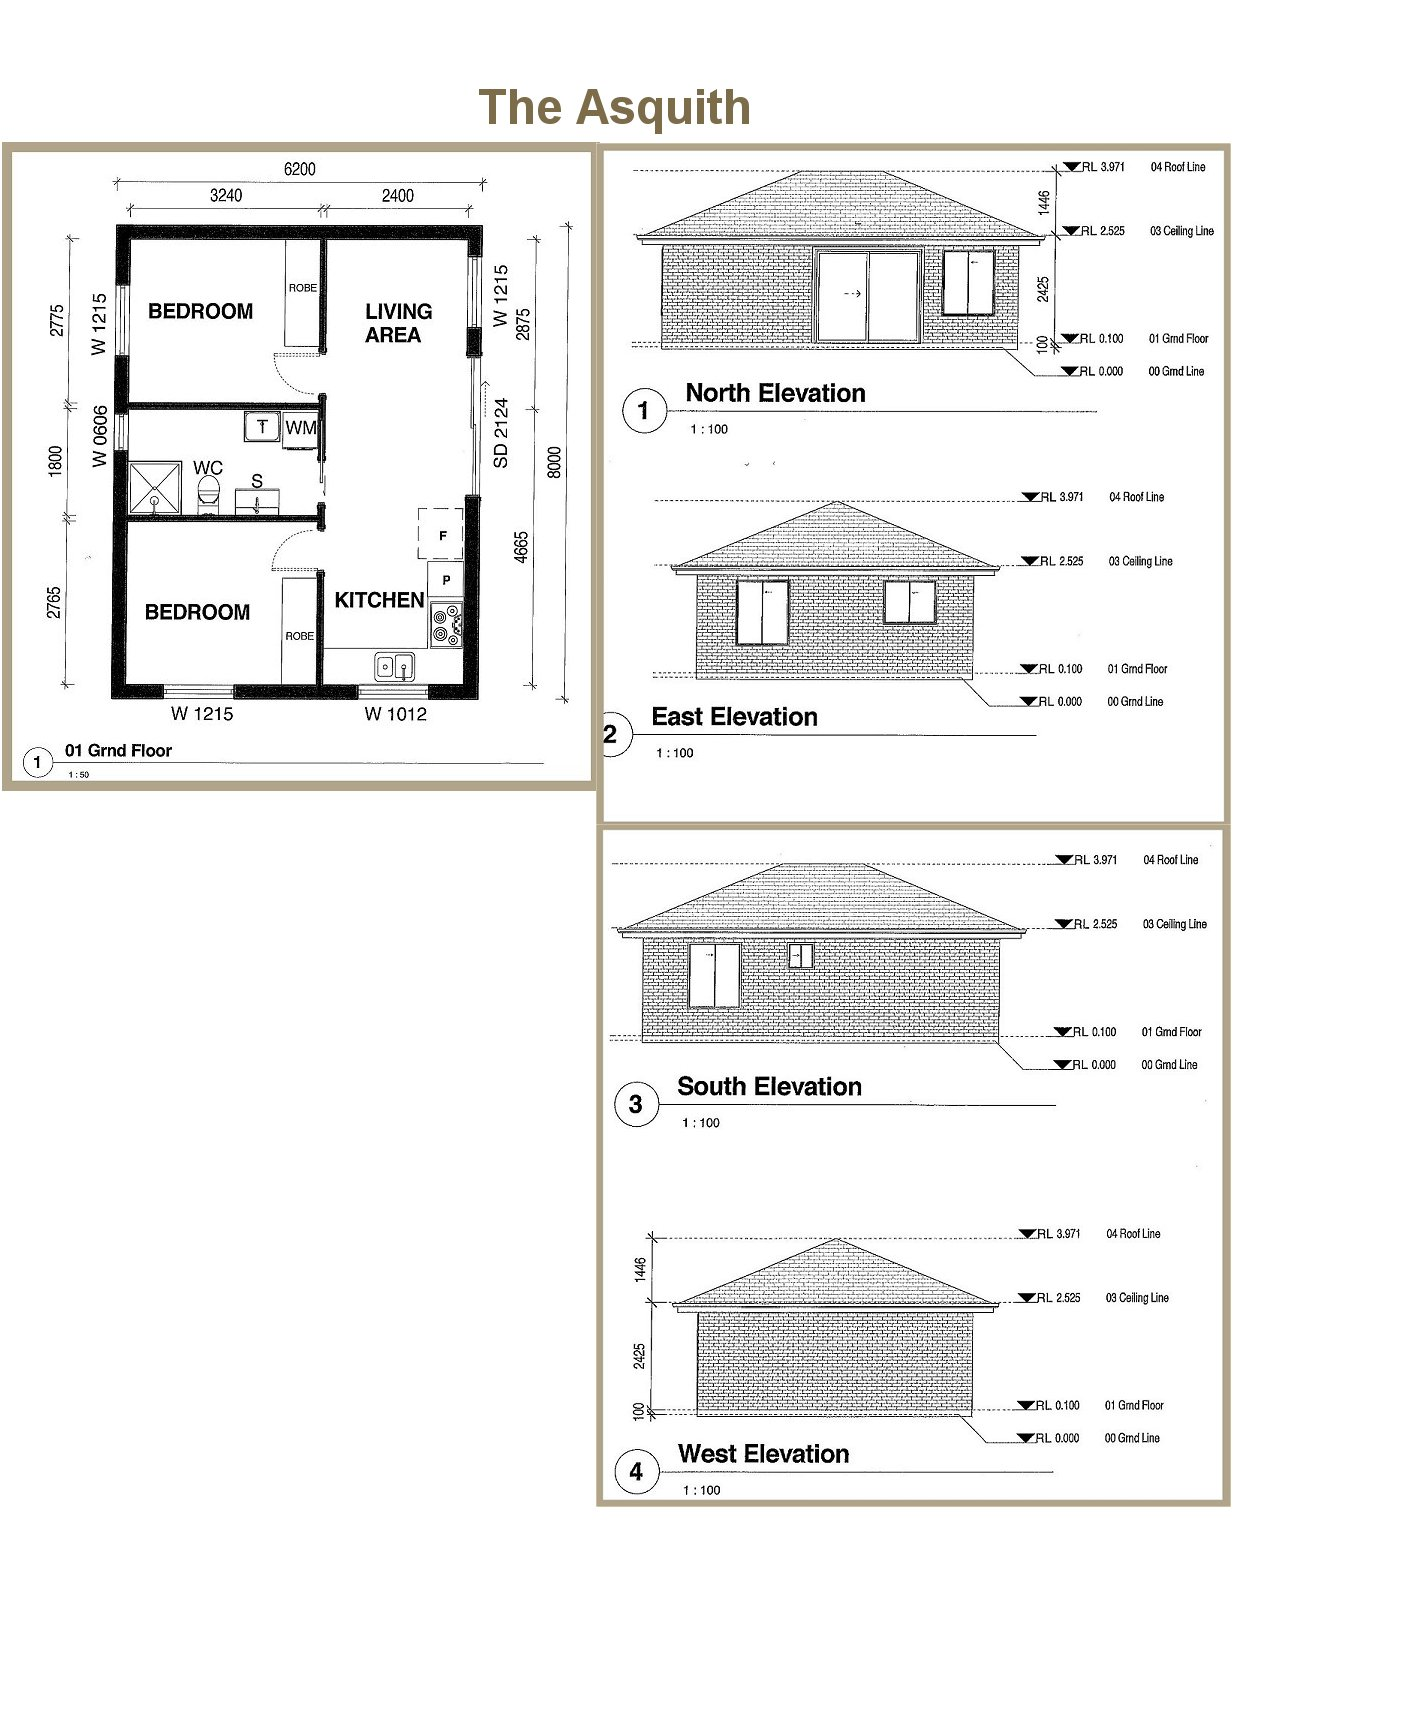 ideas for converting garage into bedroom - All Purpose Homes Granny Flat Designs